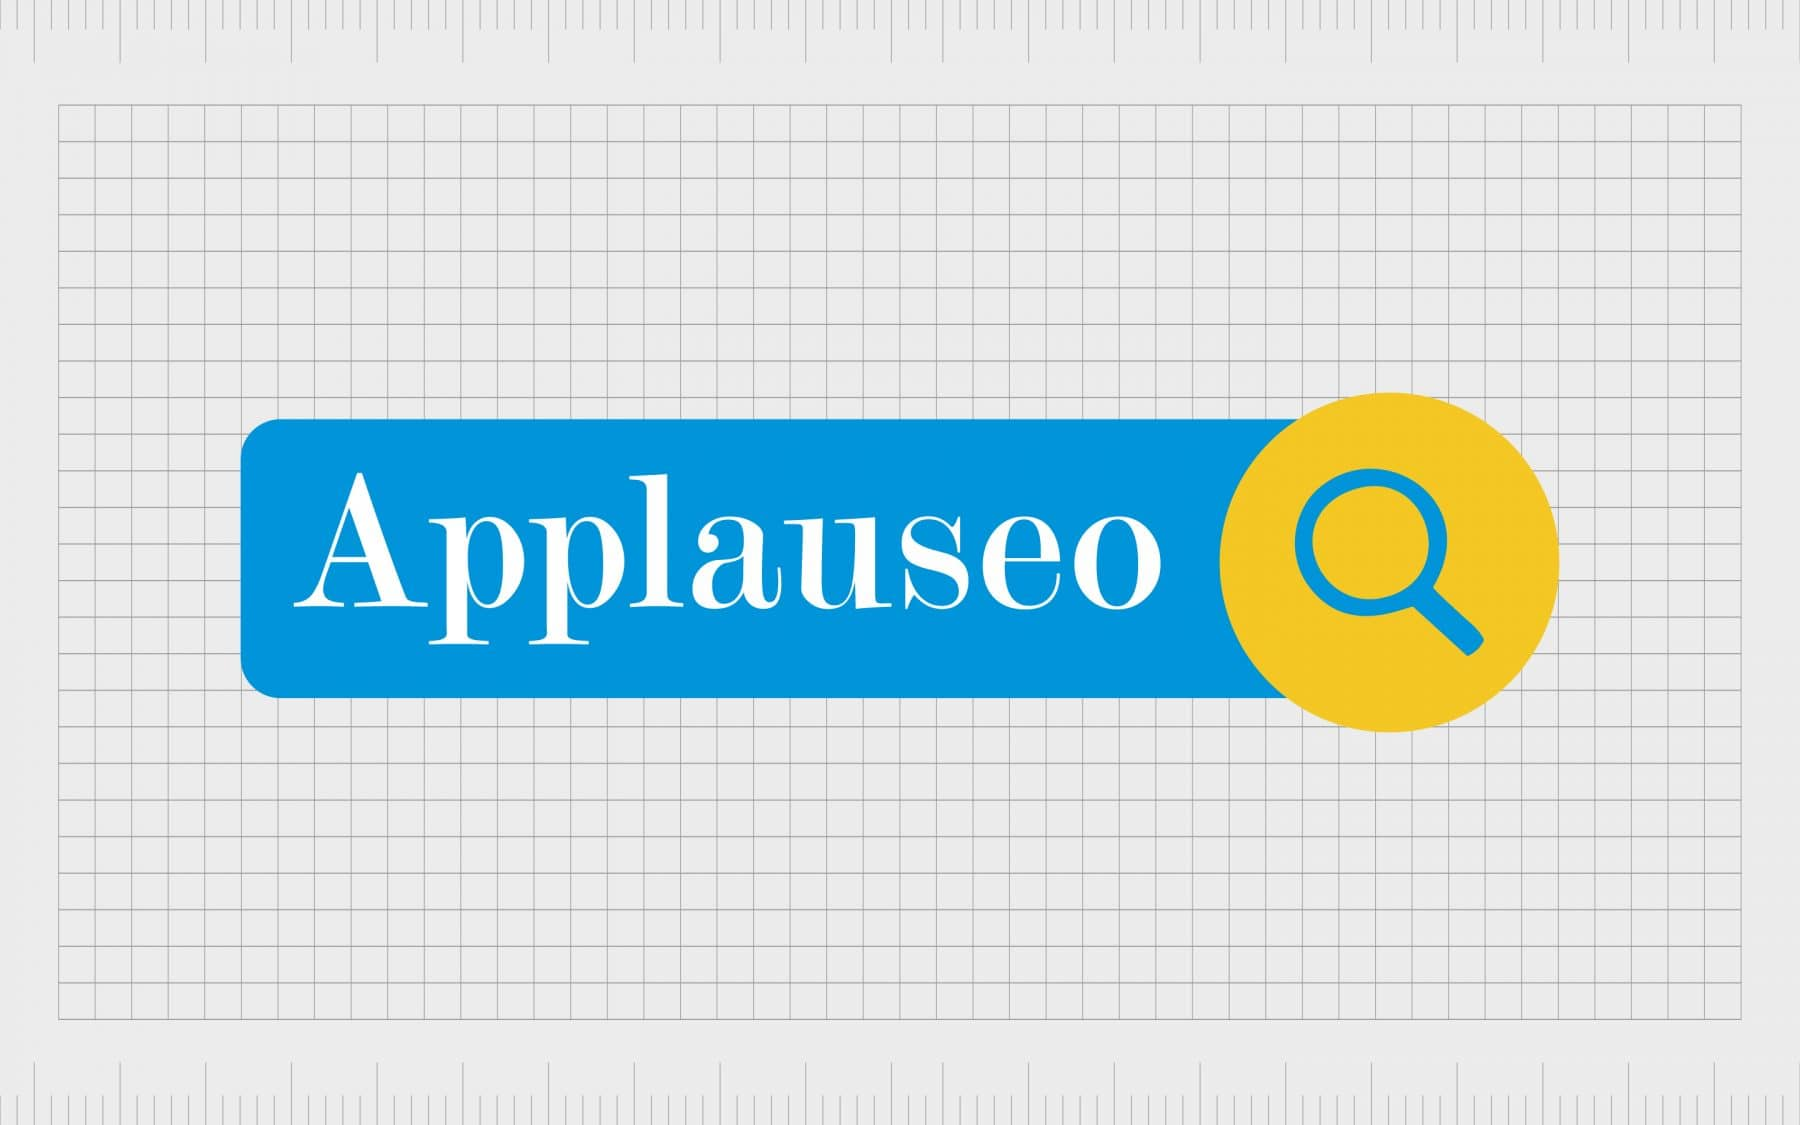 Applauseo